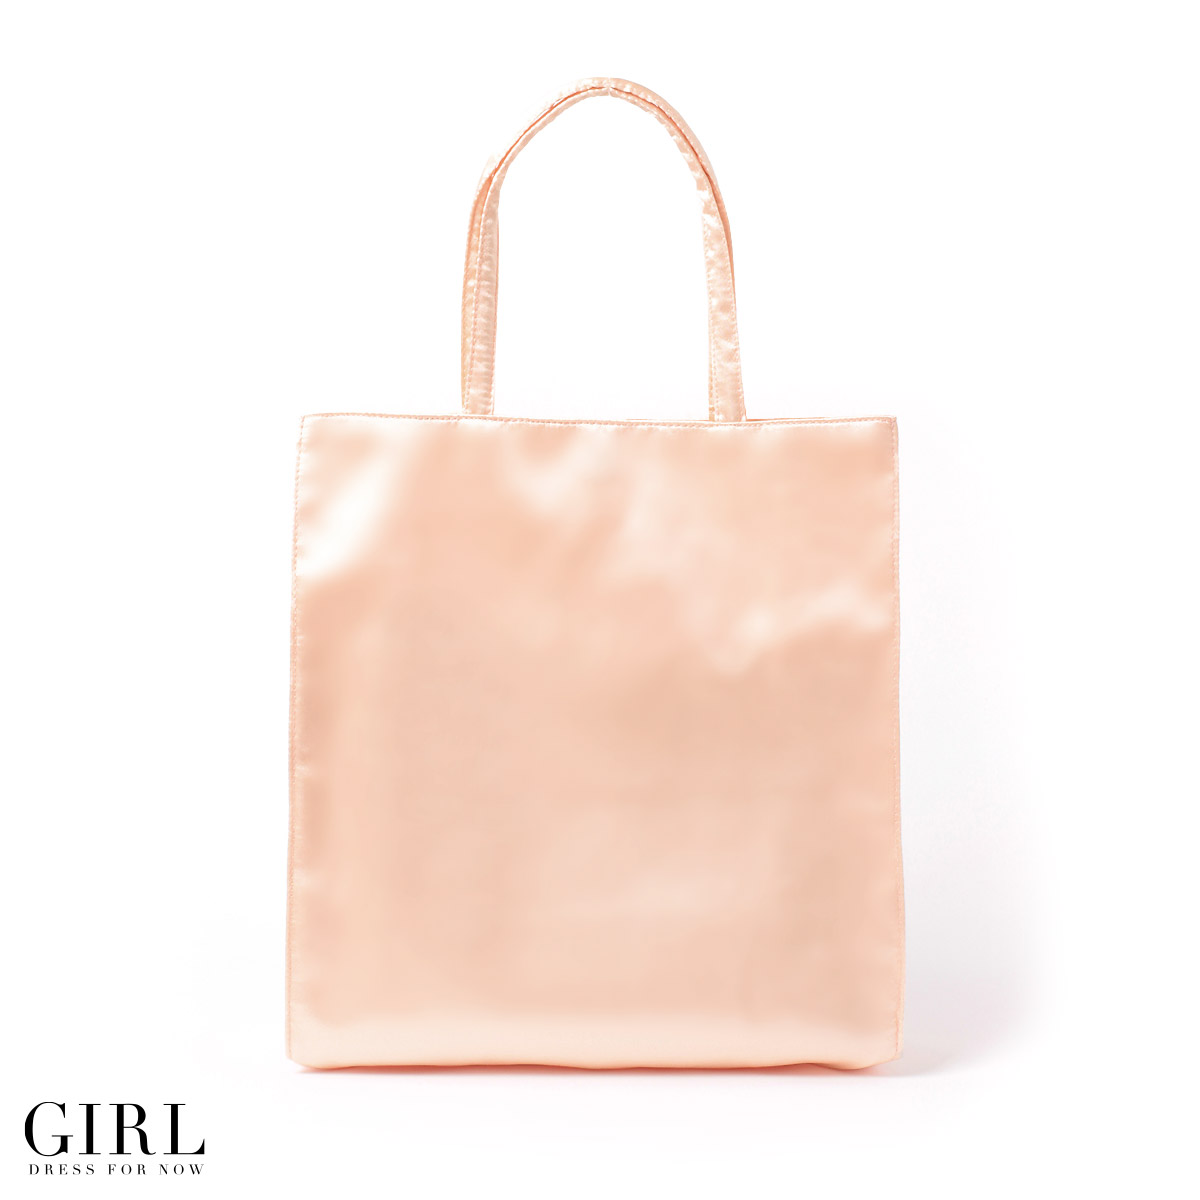 Party bag wedding bag all 4 color capacity bag ★ assured ★ ★ invited ★ Sub party bag Parties party BAG formal back people like party back party store Rakuten formal ladies ladies ladies back.